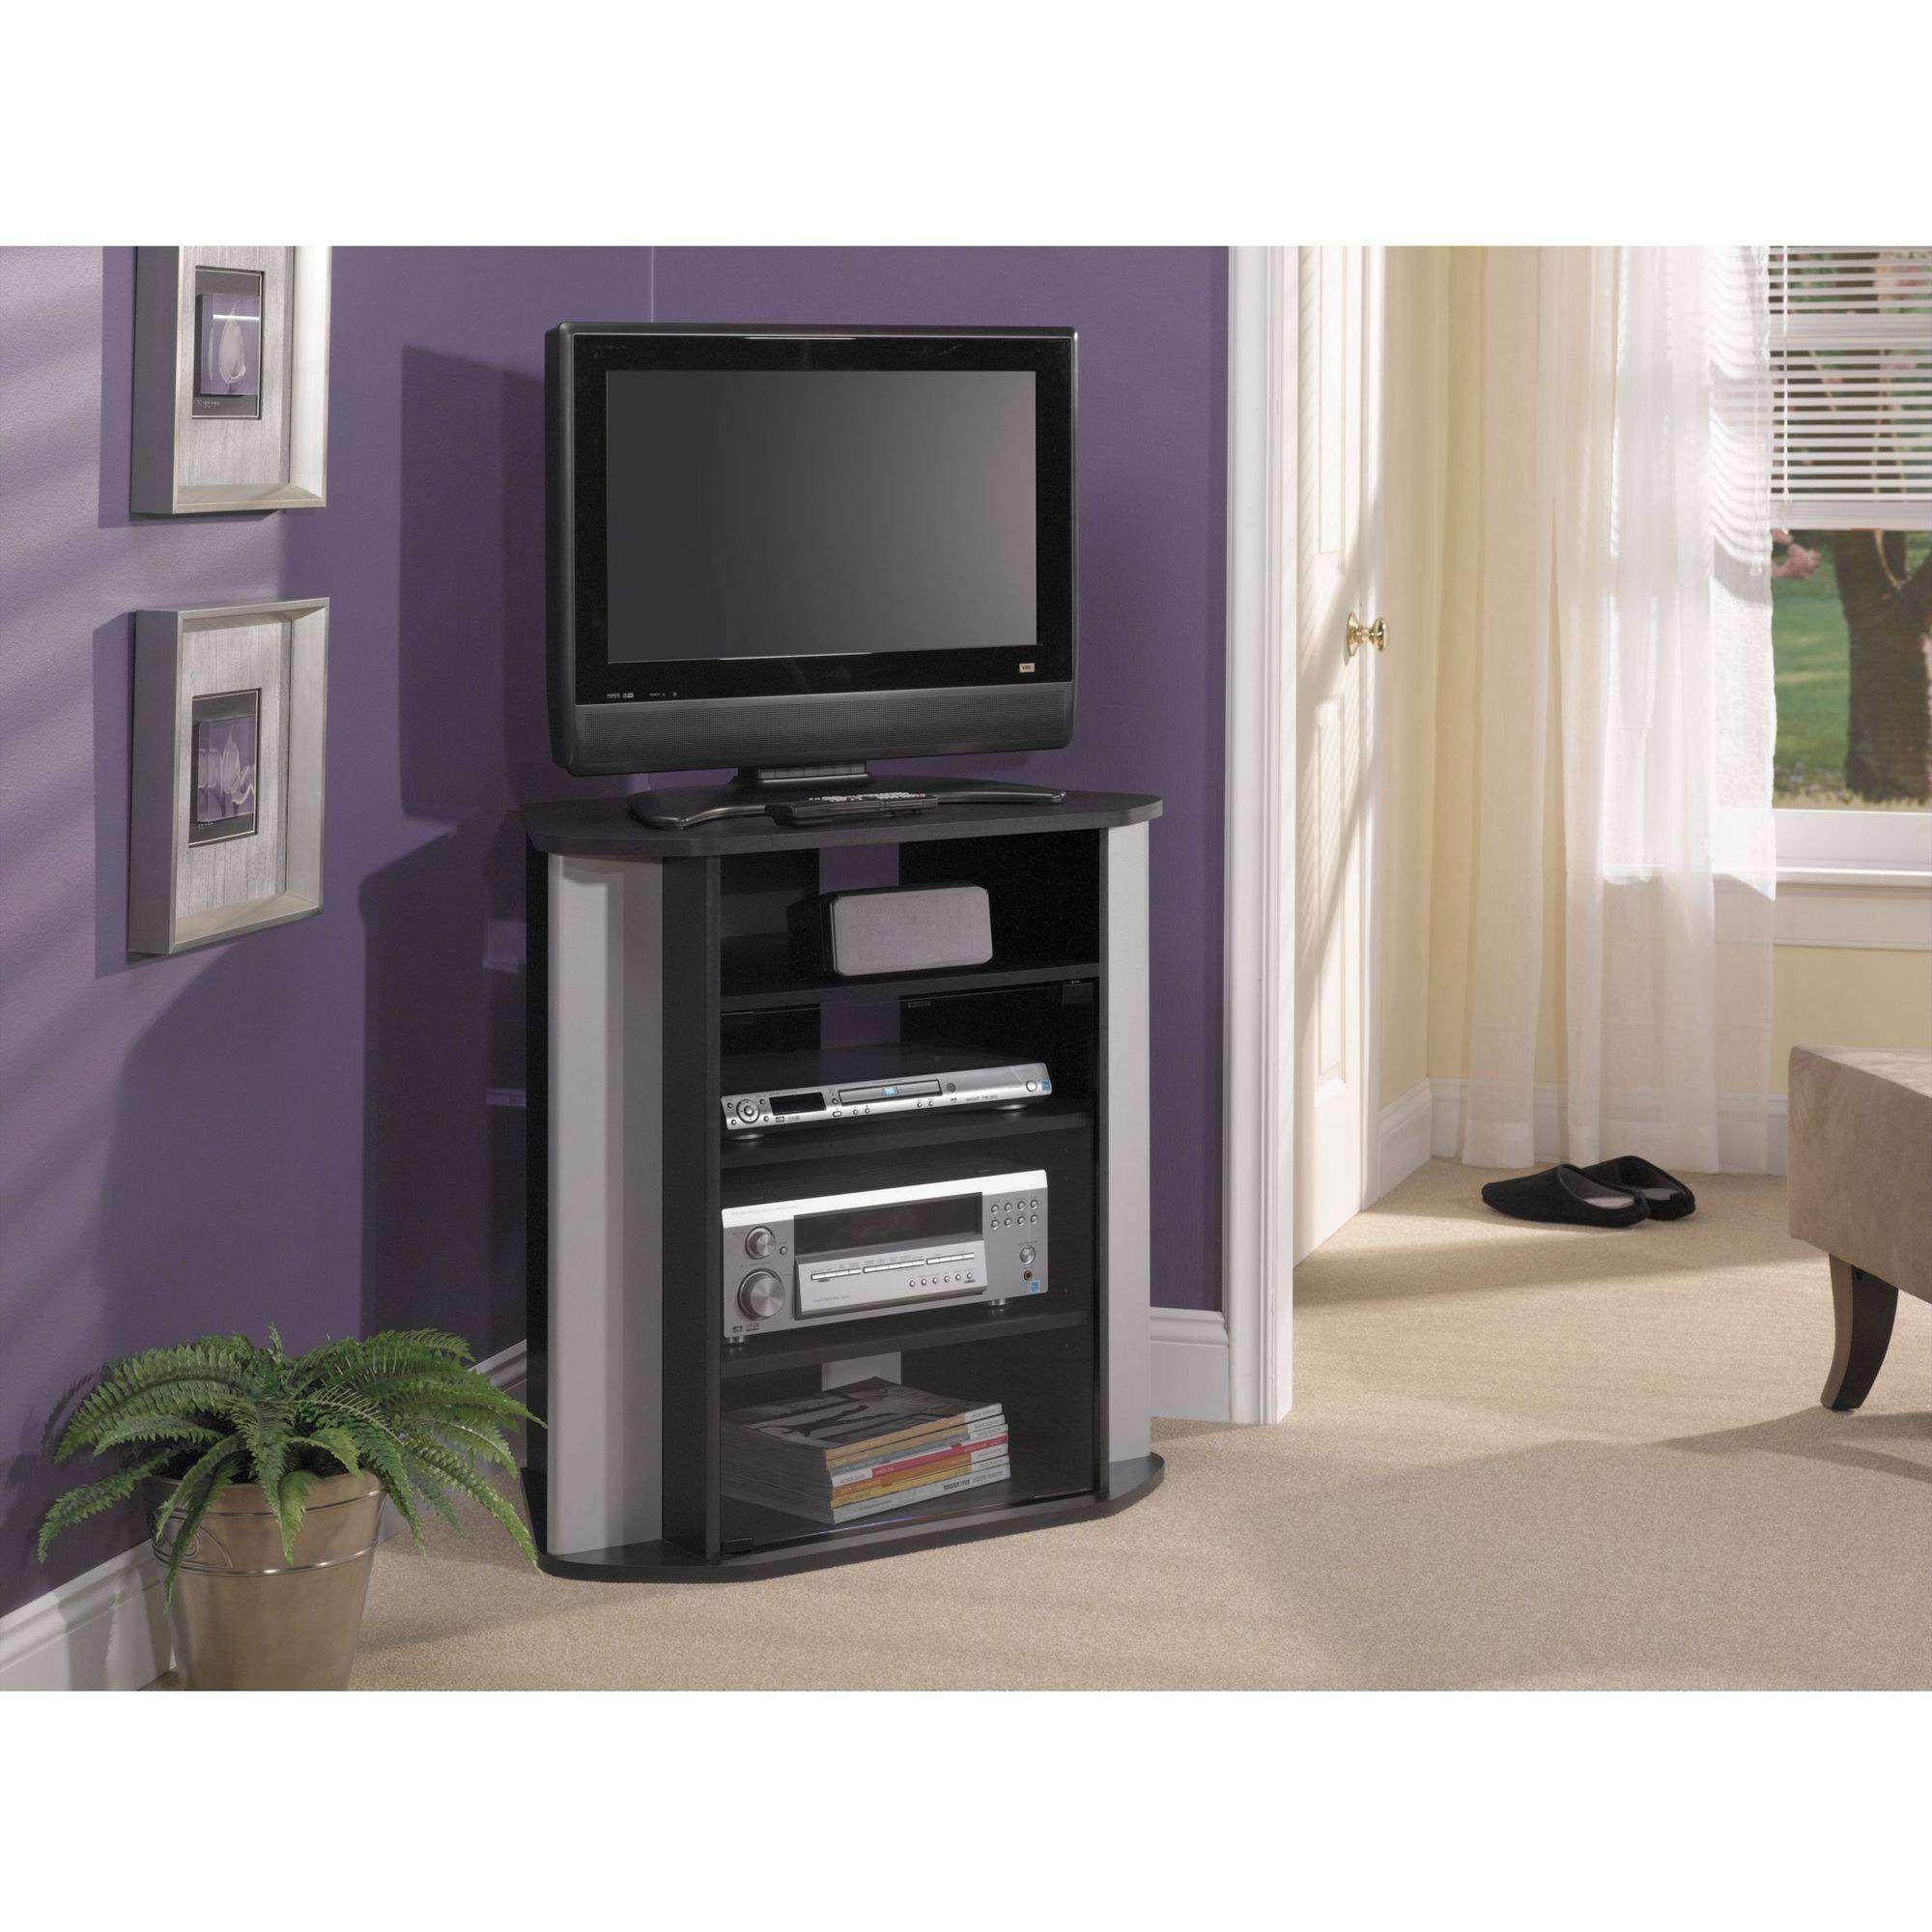 Corner Tv Stands – Walmart In Corner Tv Cabinets For Flat Screens With Doors (View 11 of 20)